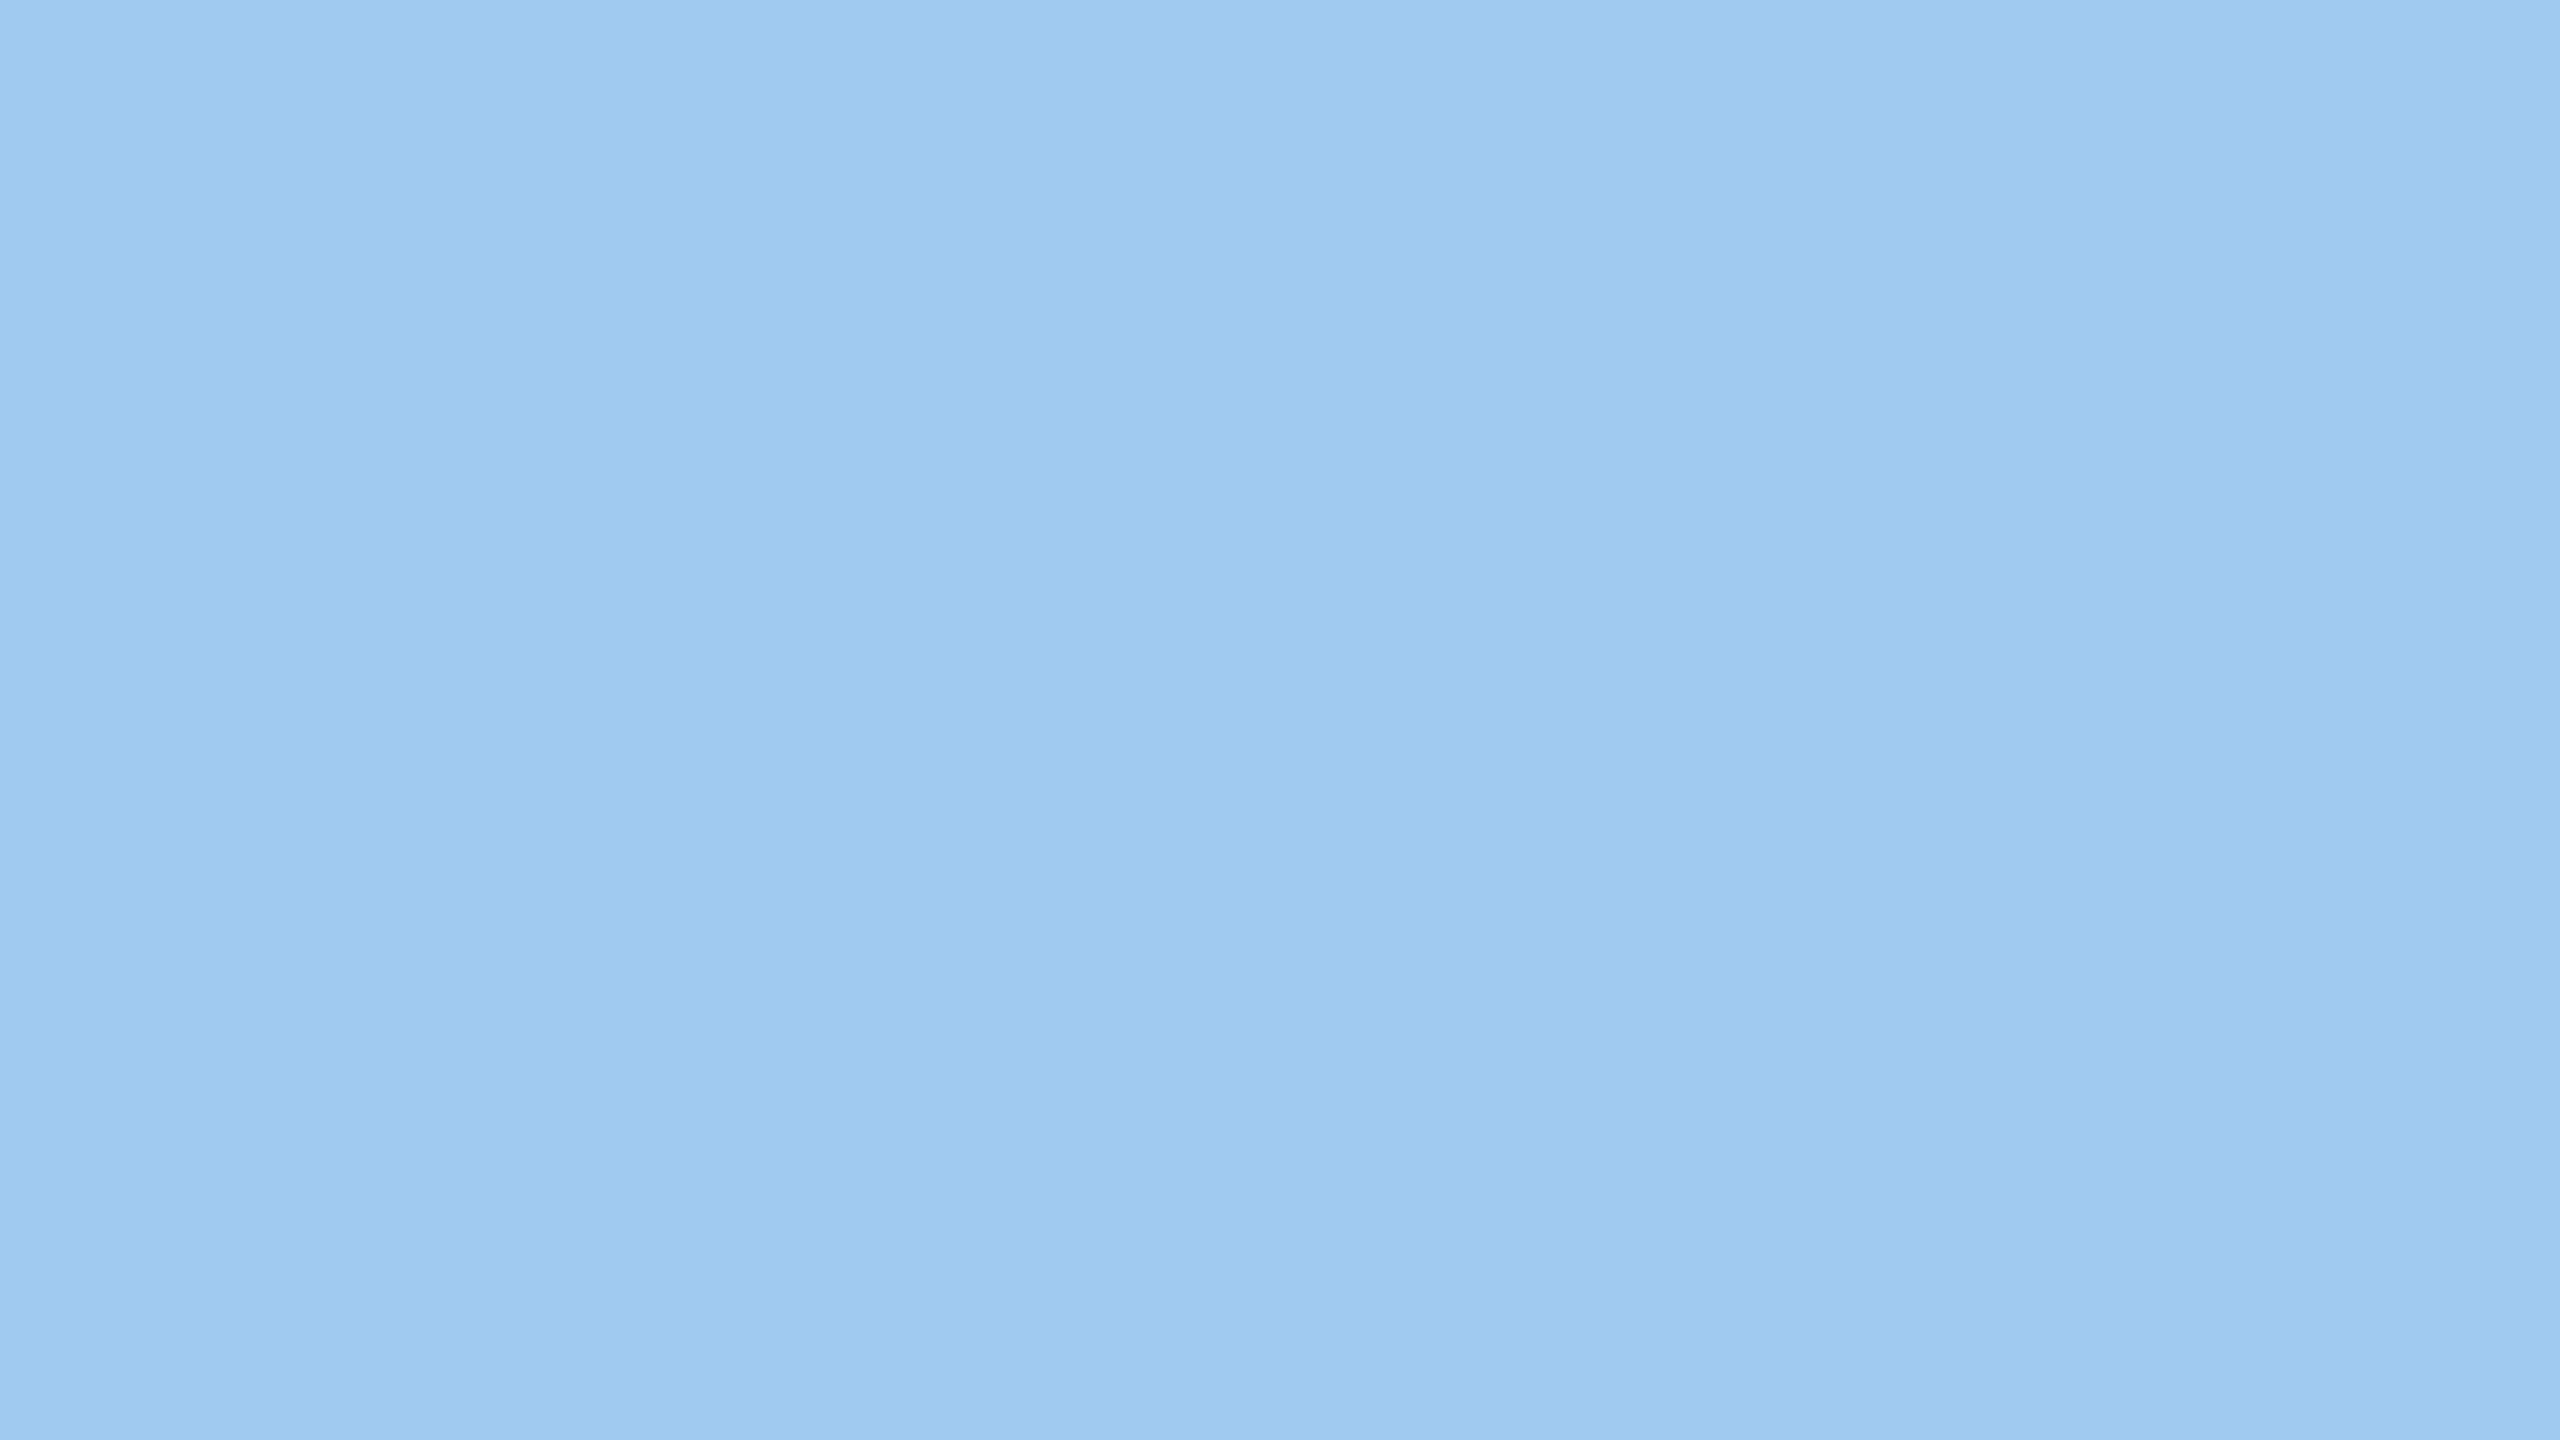 2560x1440 resolution Baby Blue Eyes solid color background view 2560x1440